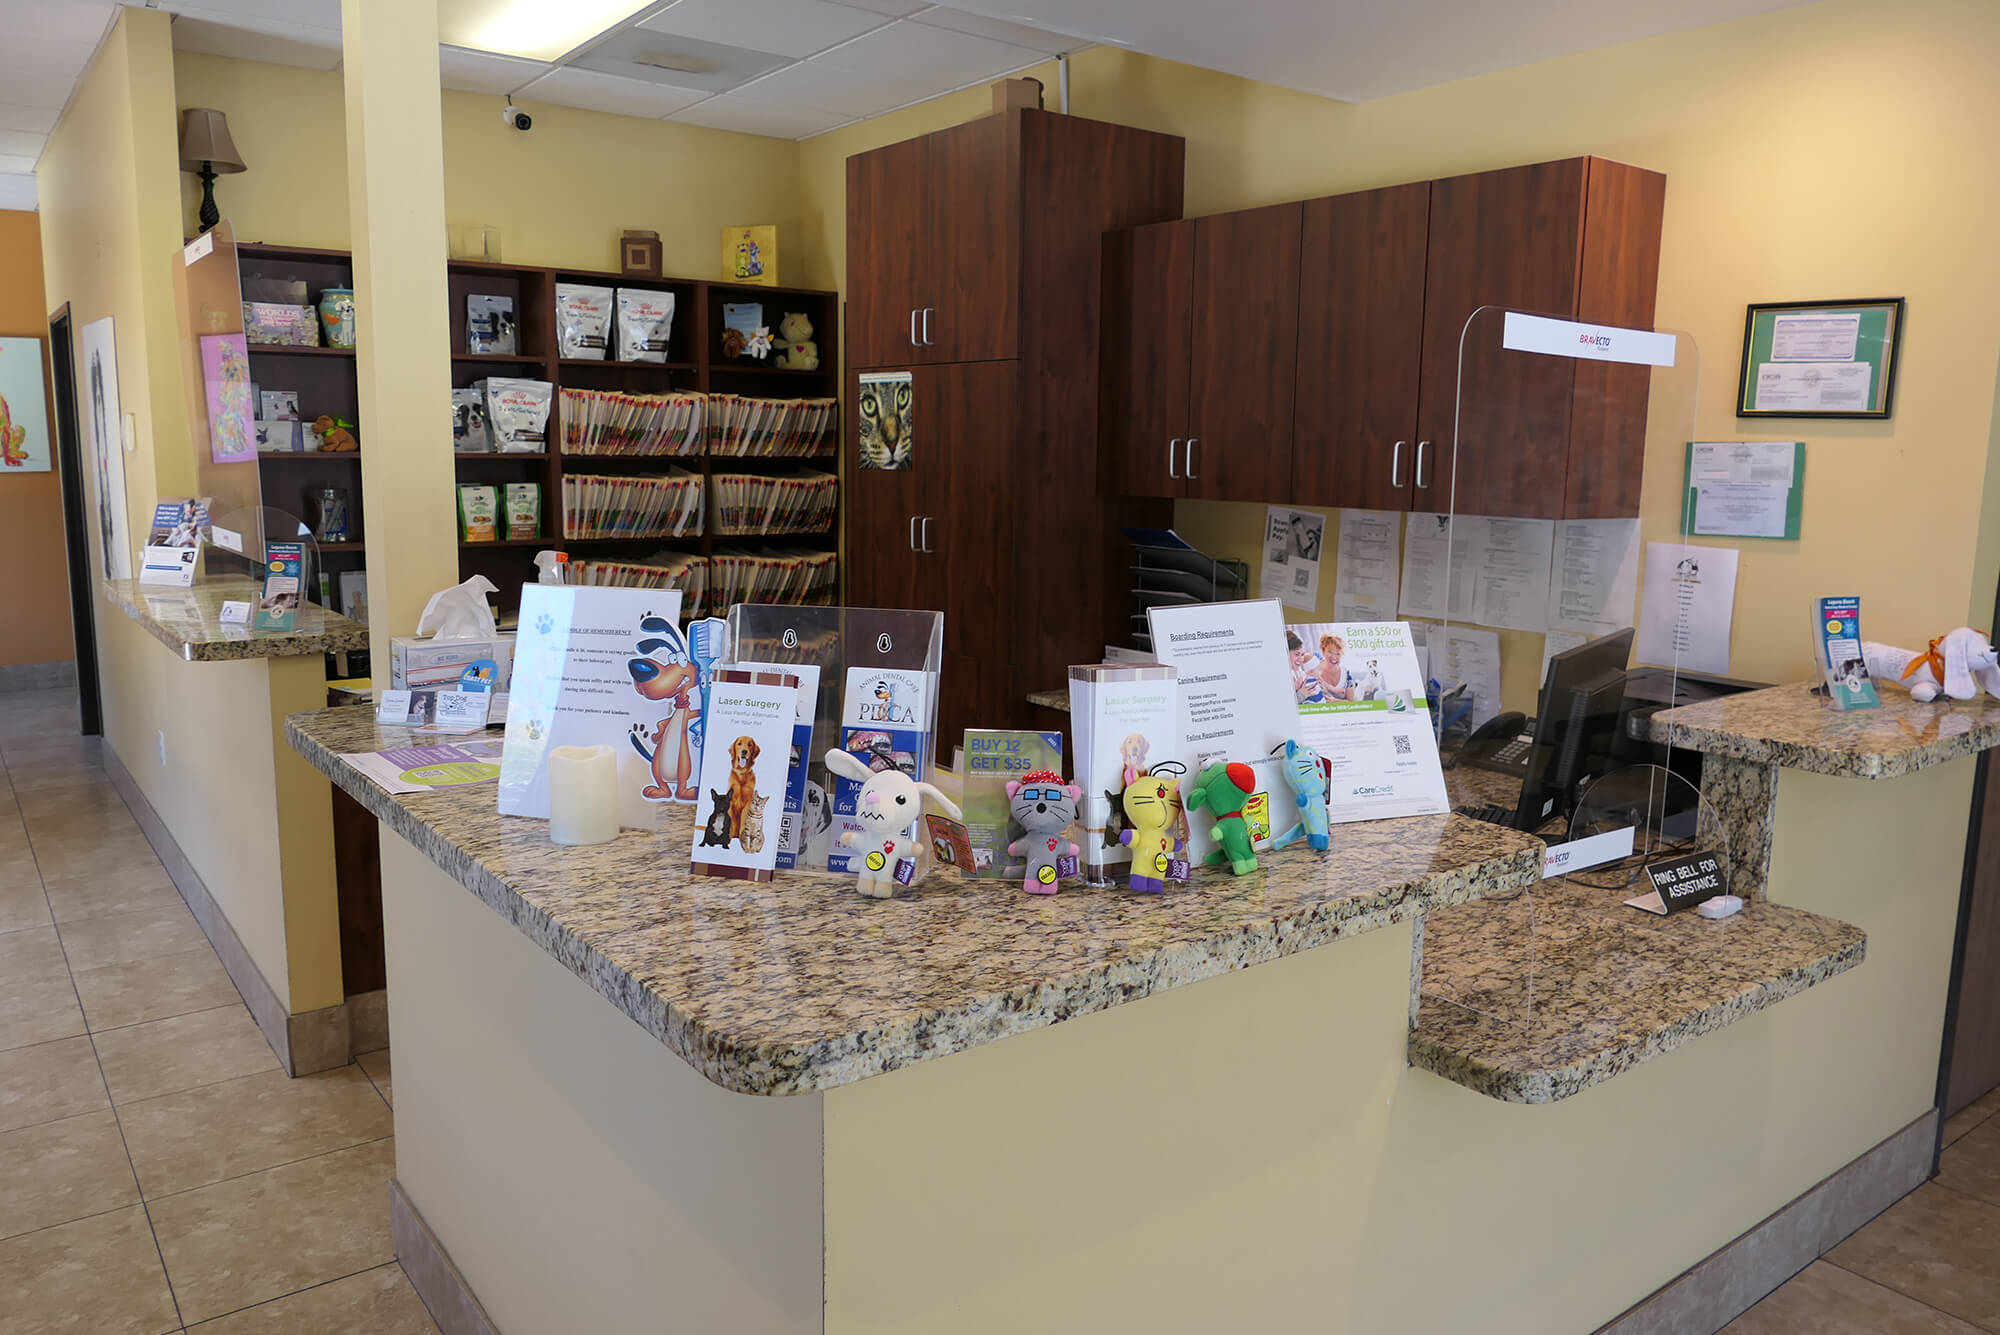 Laguna Beach Veterinary Medical Center - Pet Care for Dogs and Cats - Gallery Photos